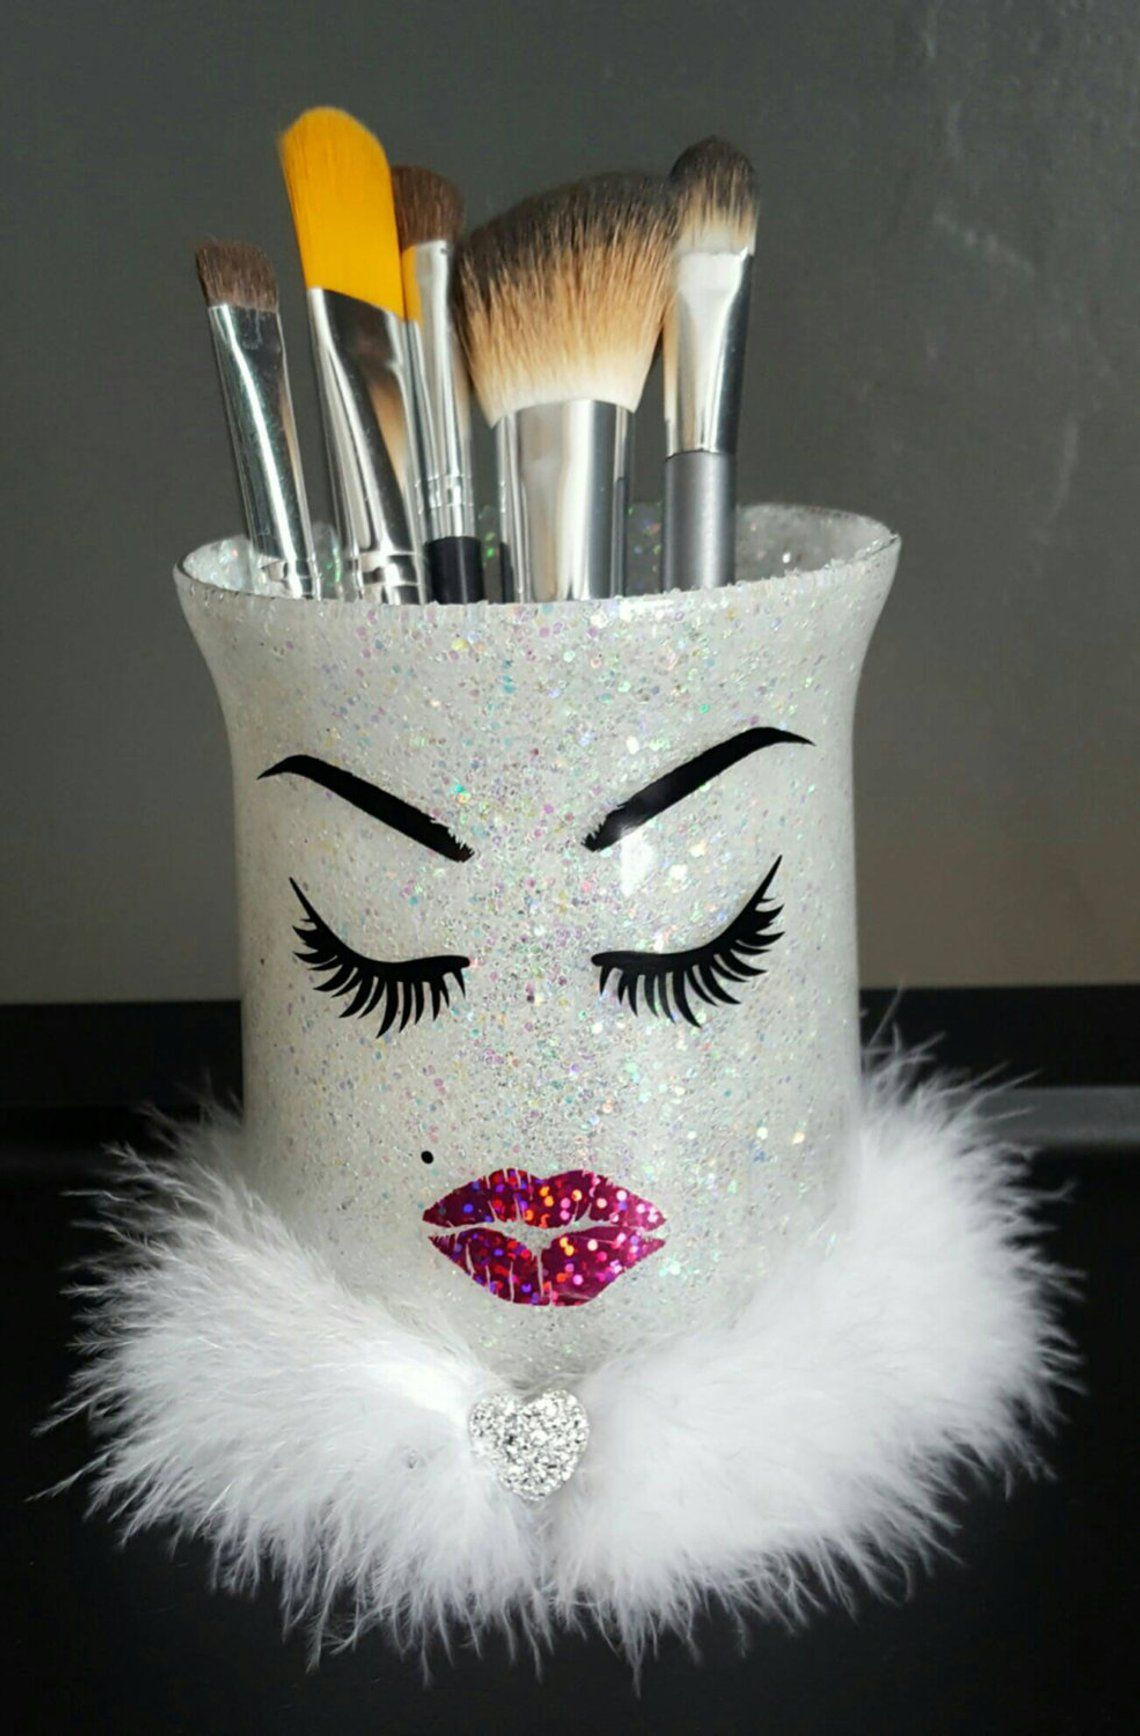 White glitter makeup holder. Brushes. Lashes & lips. Pink